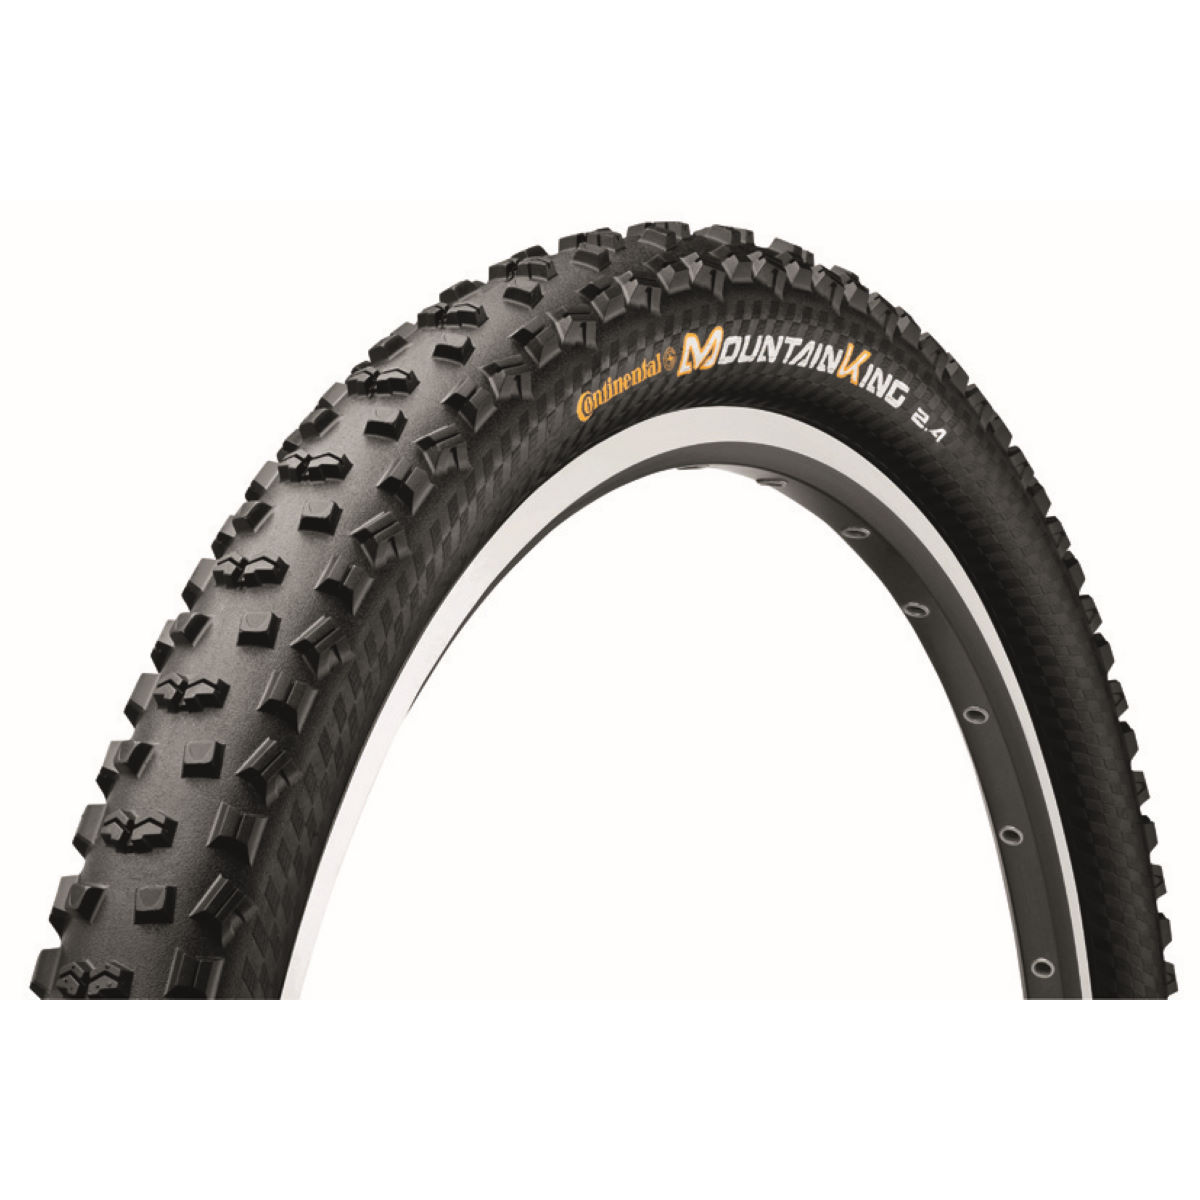 Pneu VTT Continental Mountain King II - 2.2 27.5'' Noir Pneus